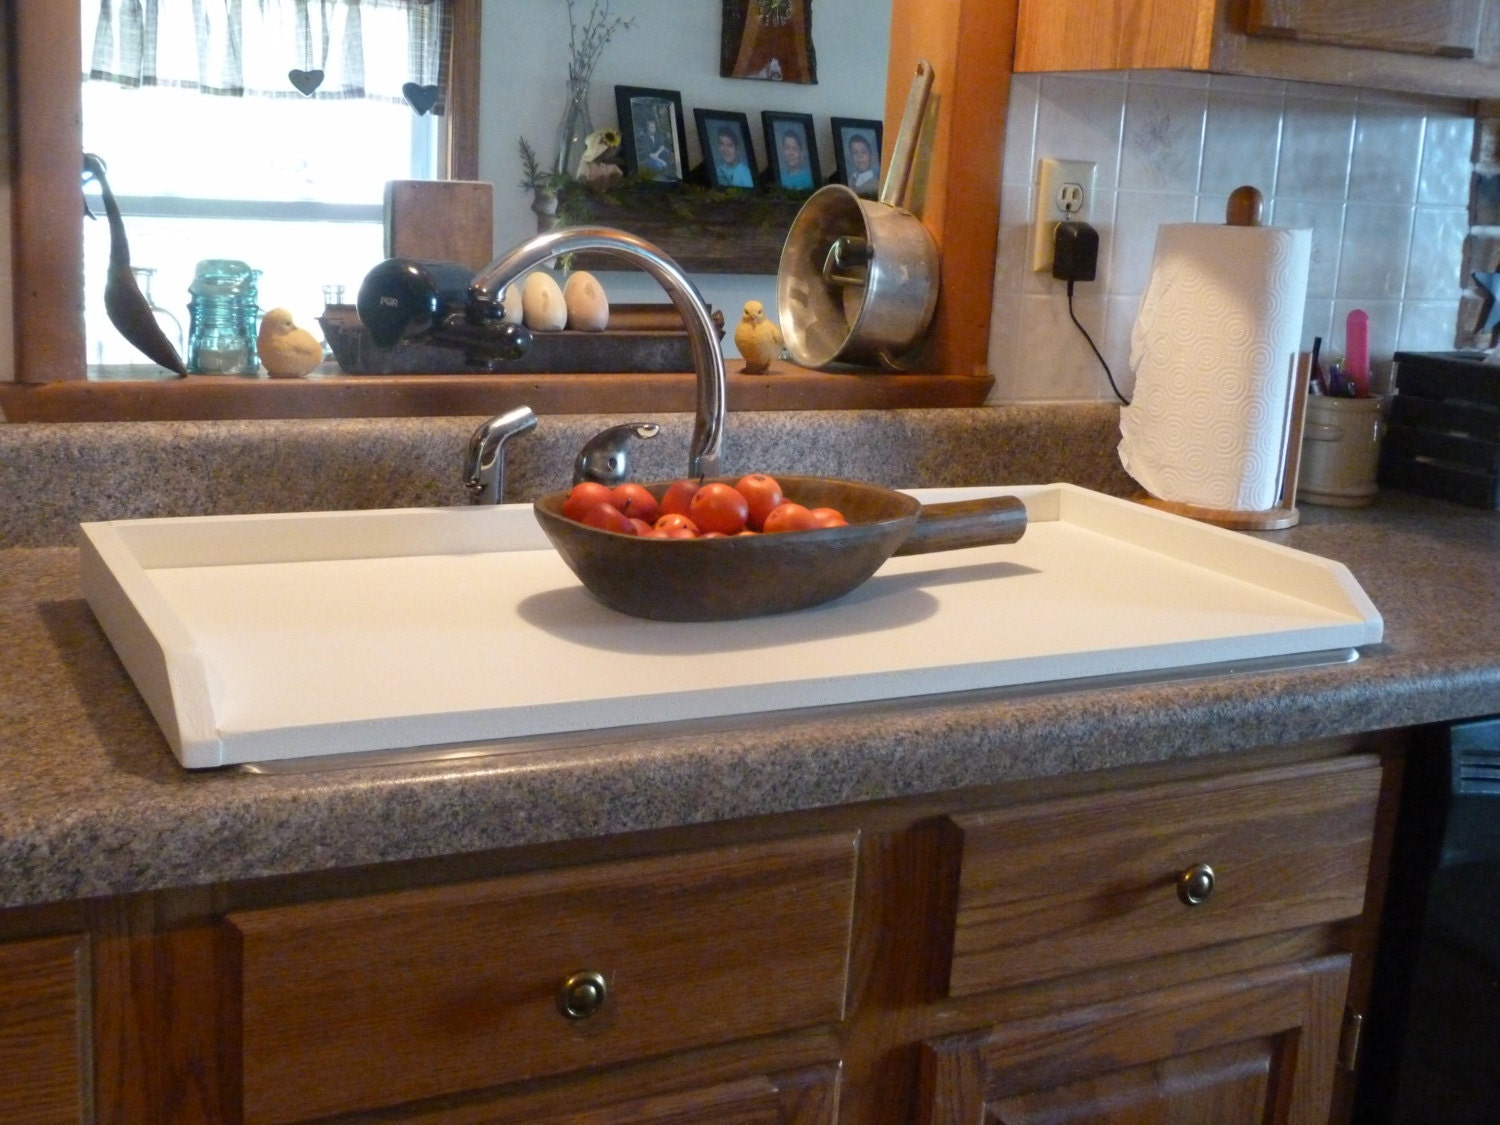 Kitchen Sink Cover For Rv